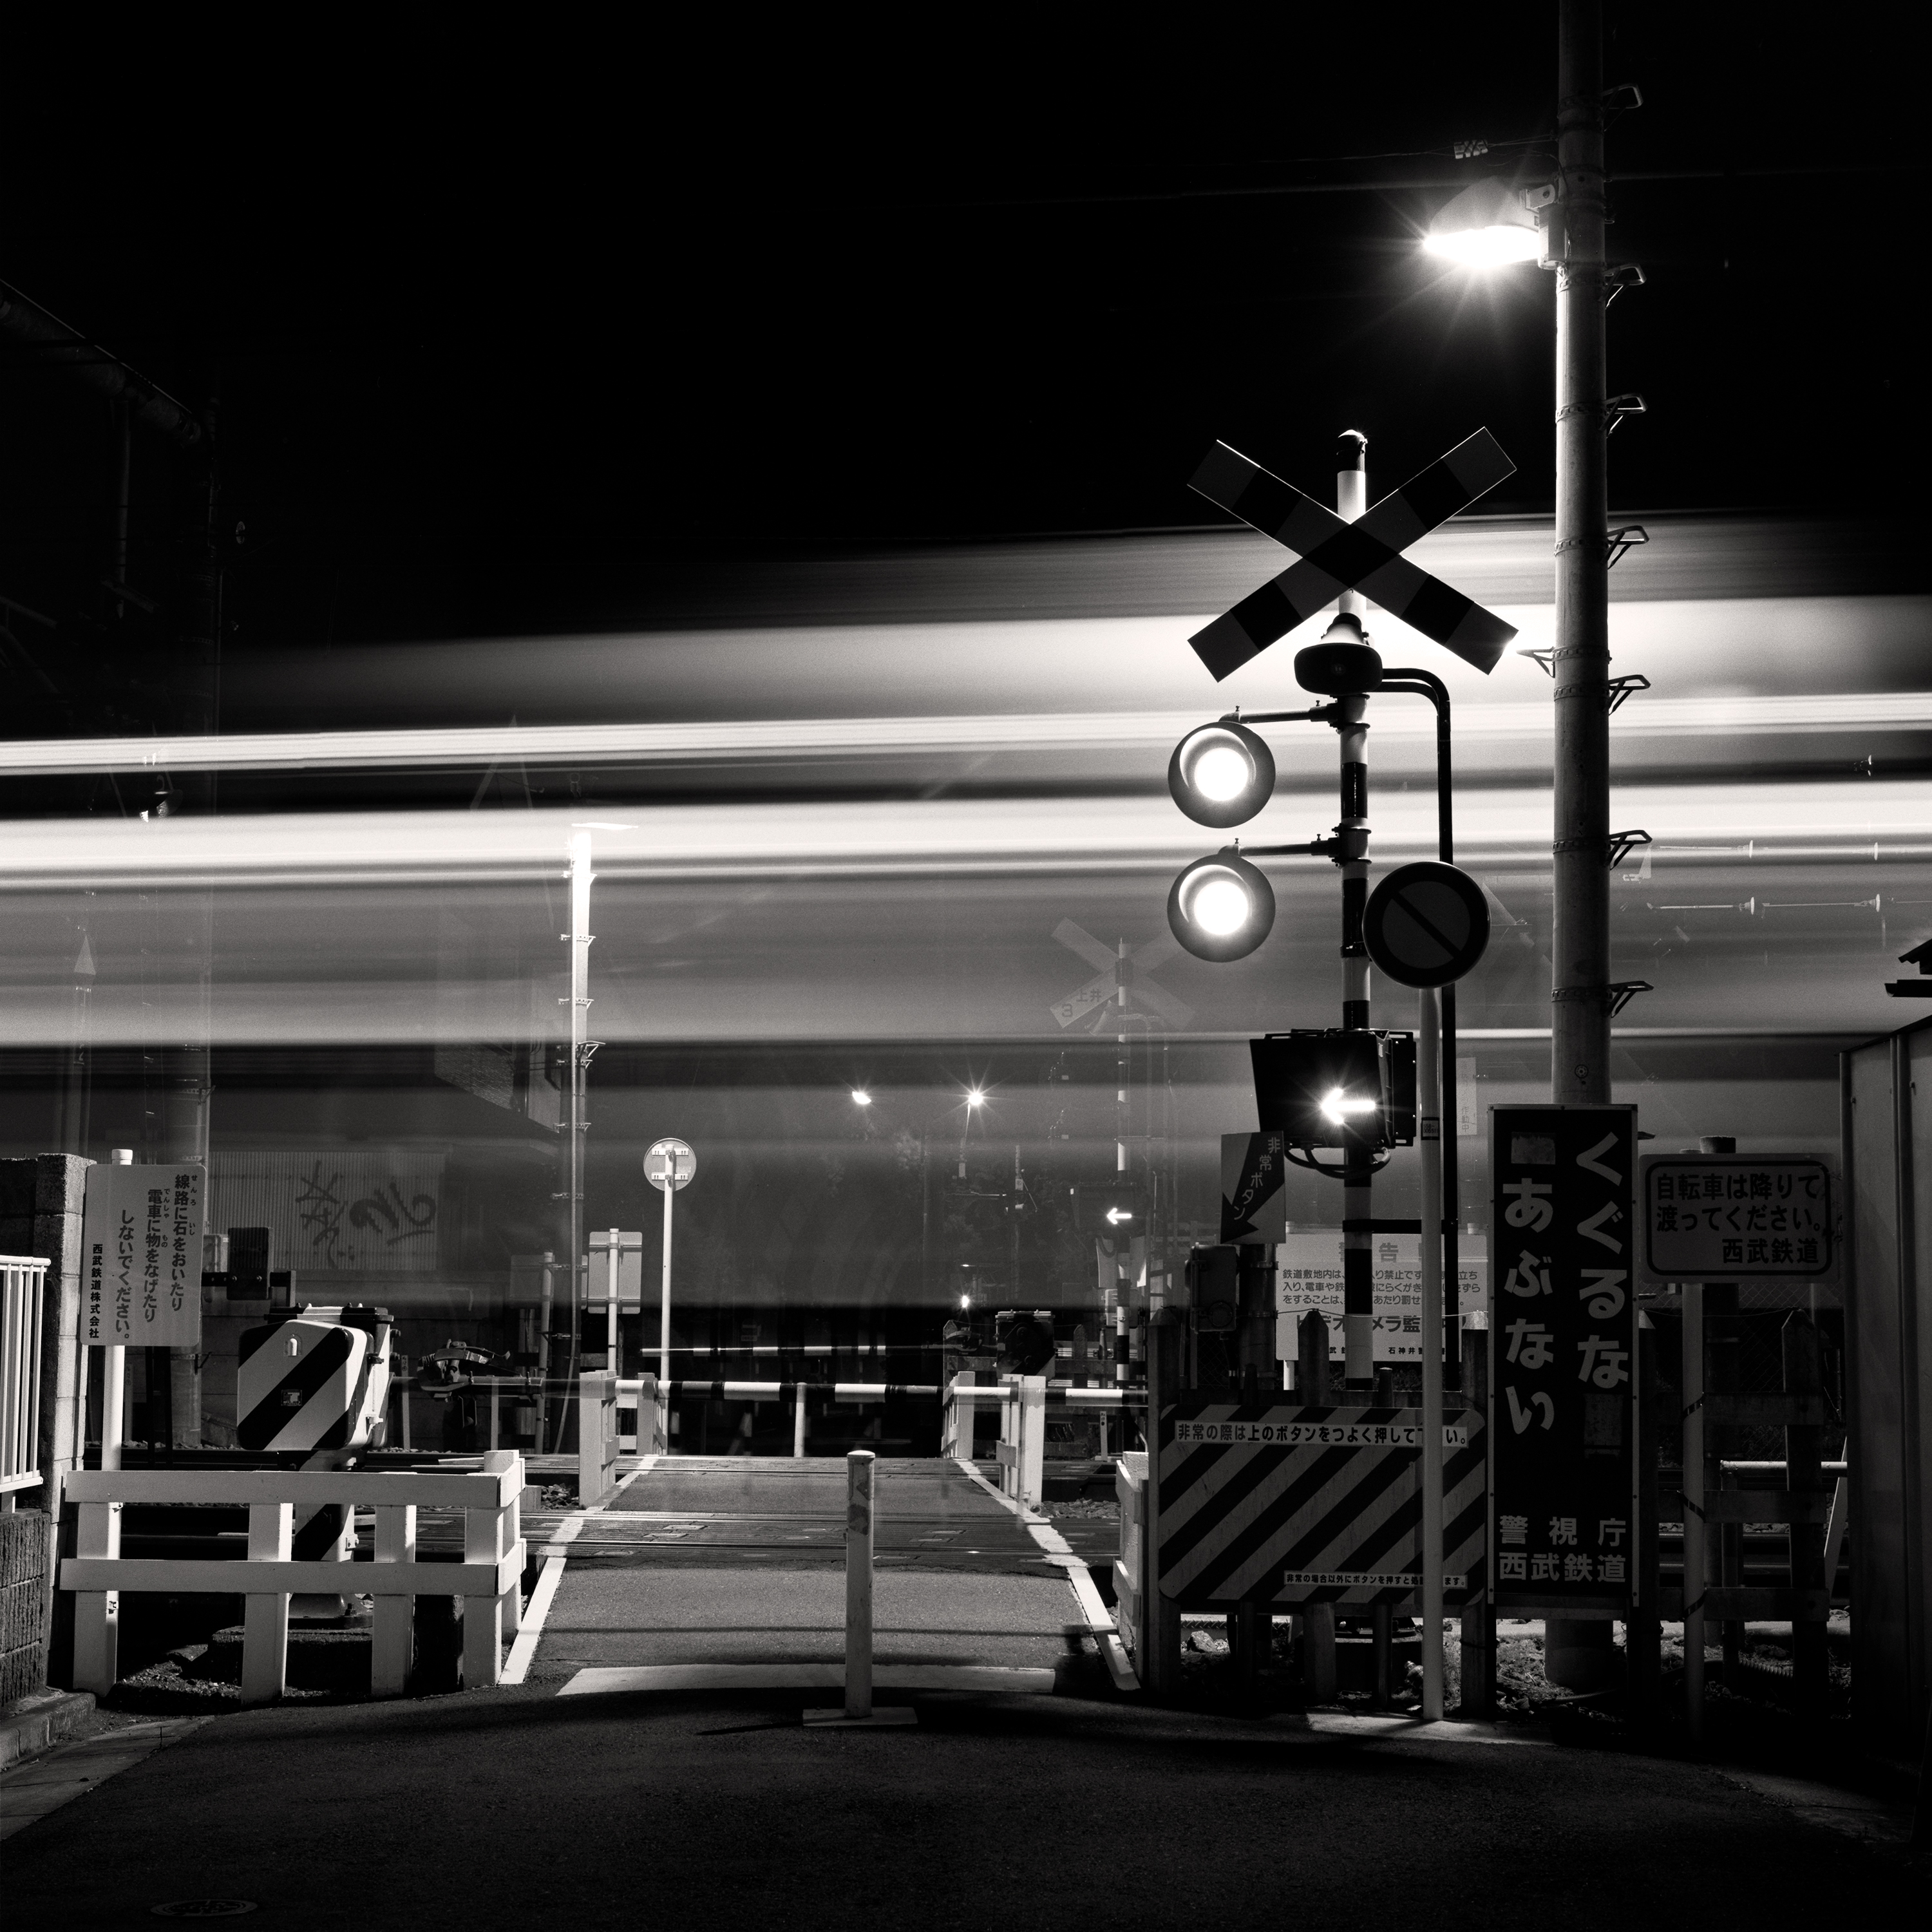 Photo: Train passing through level crossing, Suginami-ku